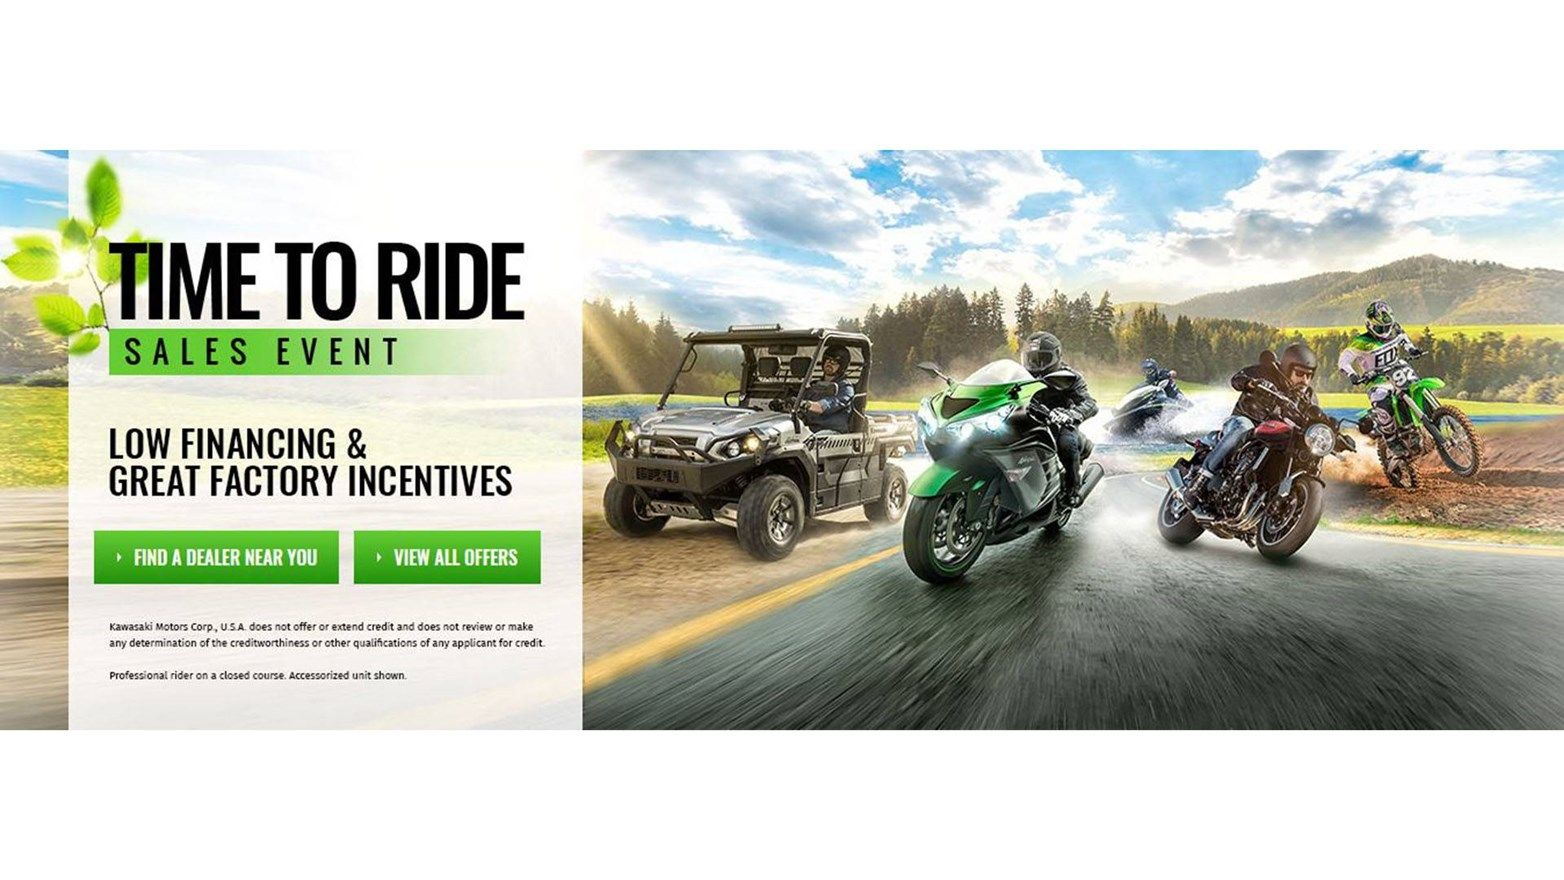 Kawasaki - Time To Ride Sales Event